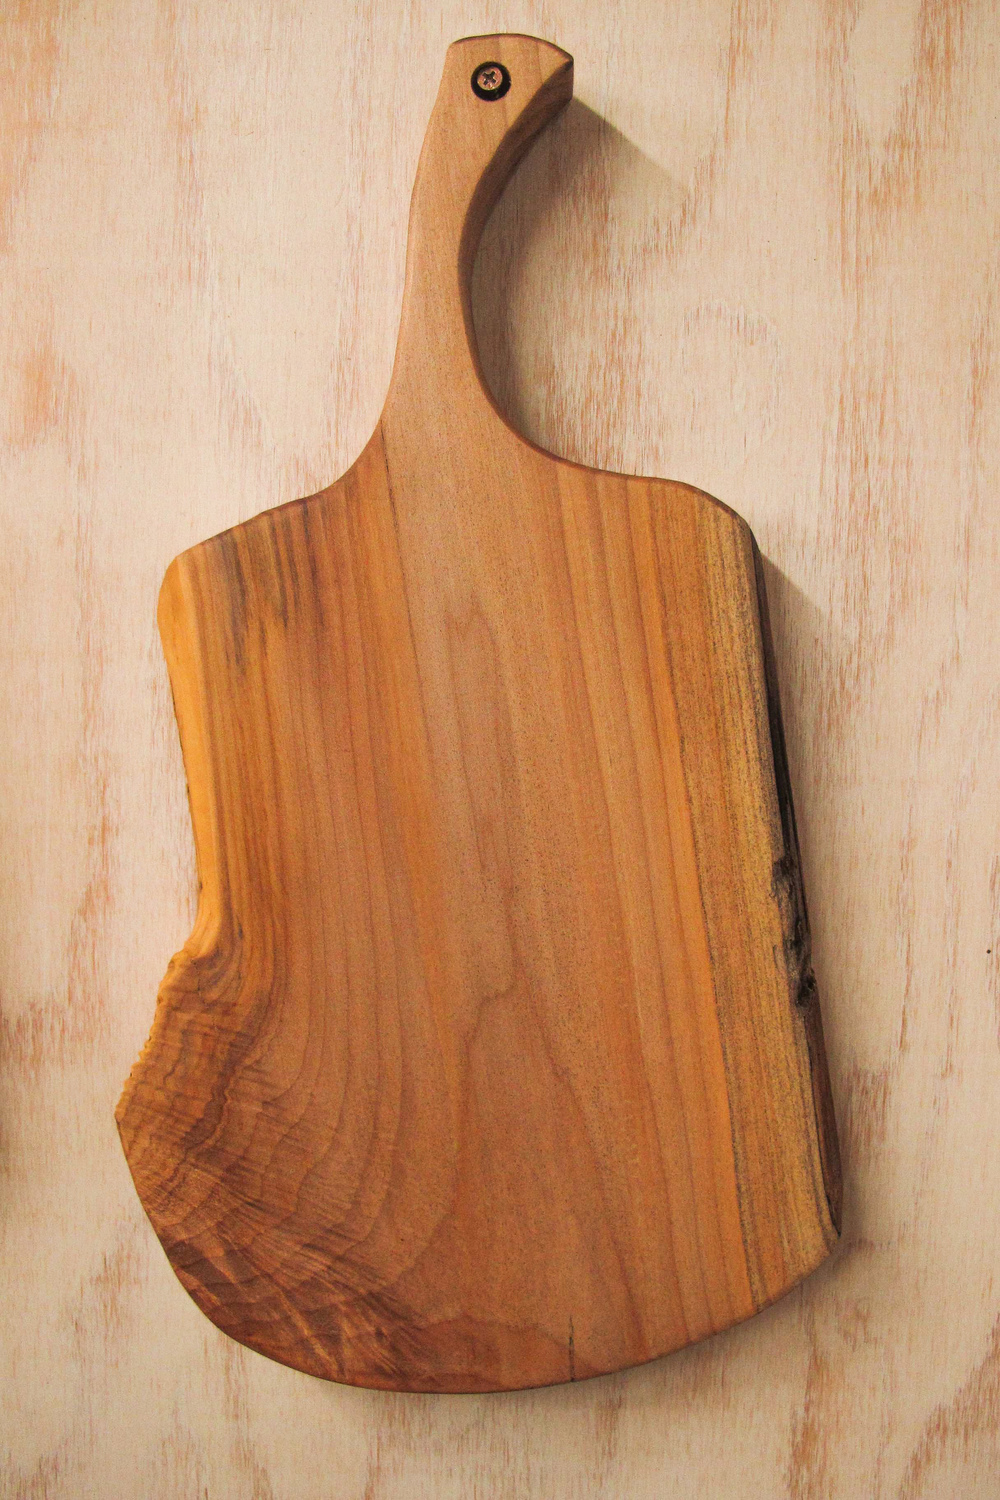 CuttingBoard26.jpg